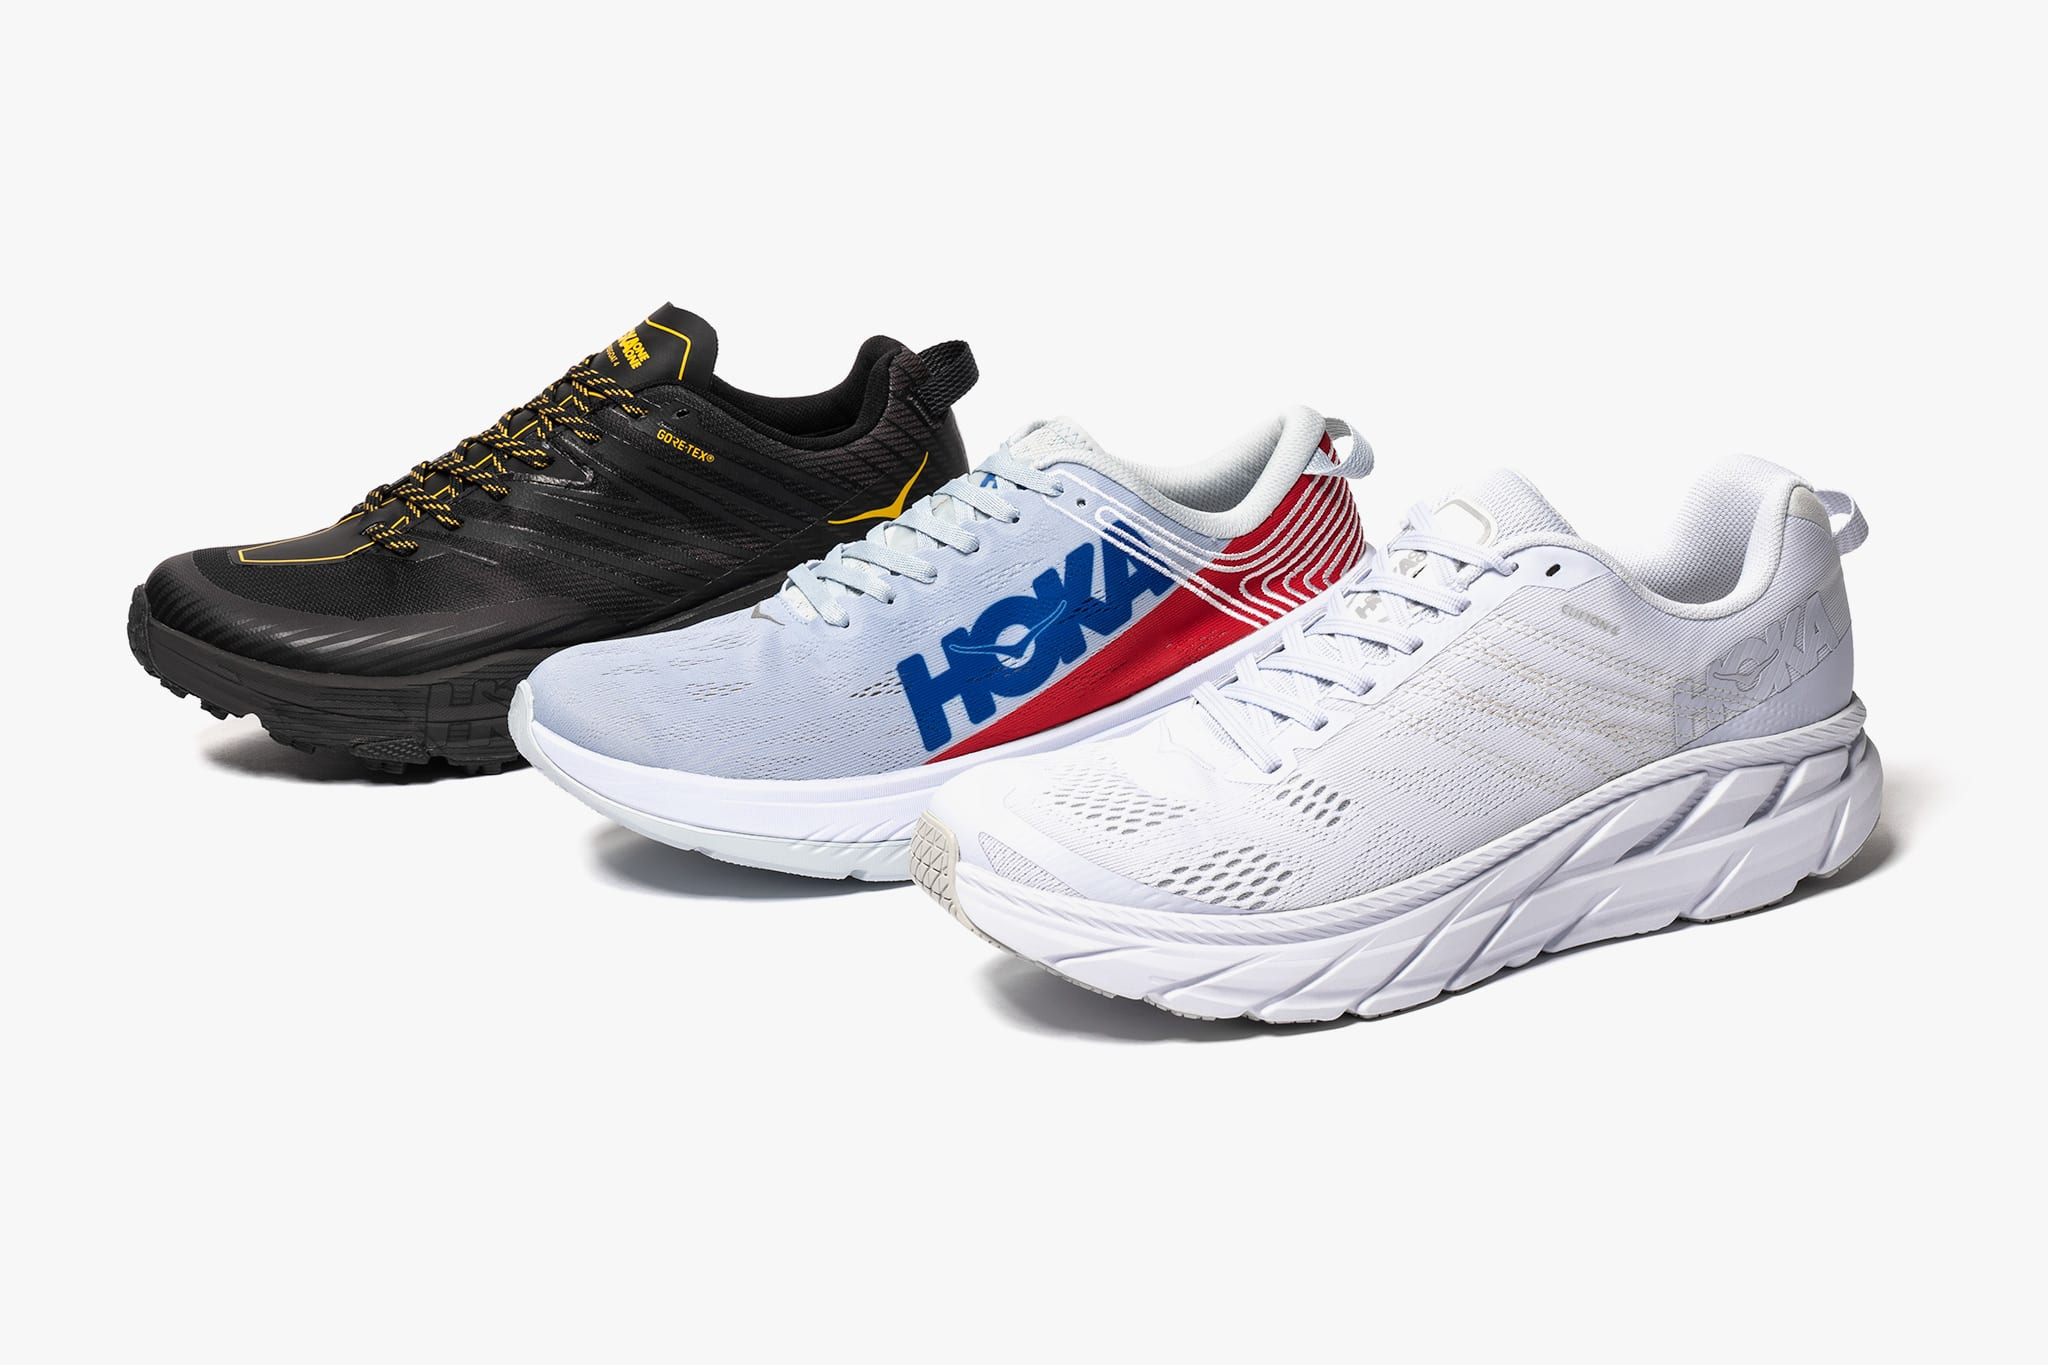 HOKA ONE ONE SS20 NEW ARRIVALS HAVEN